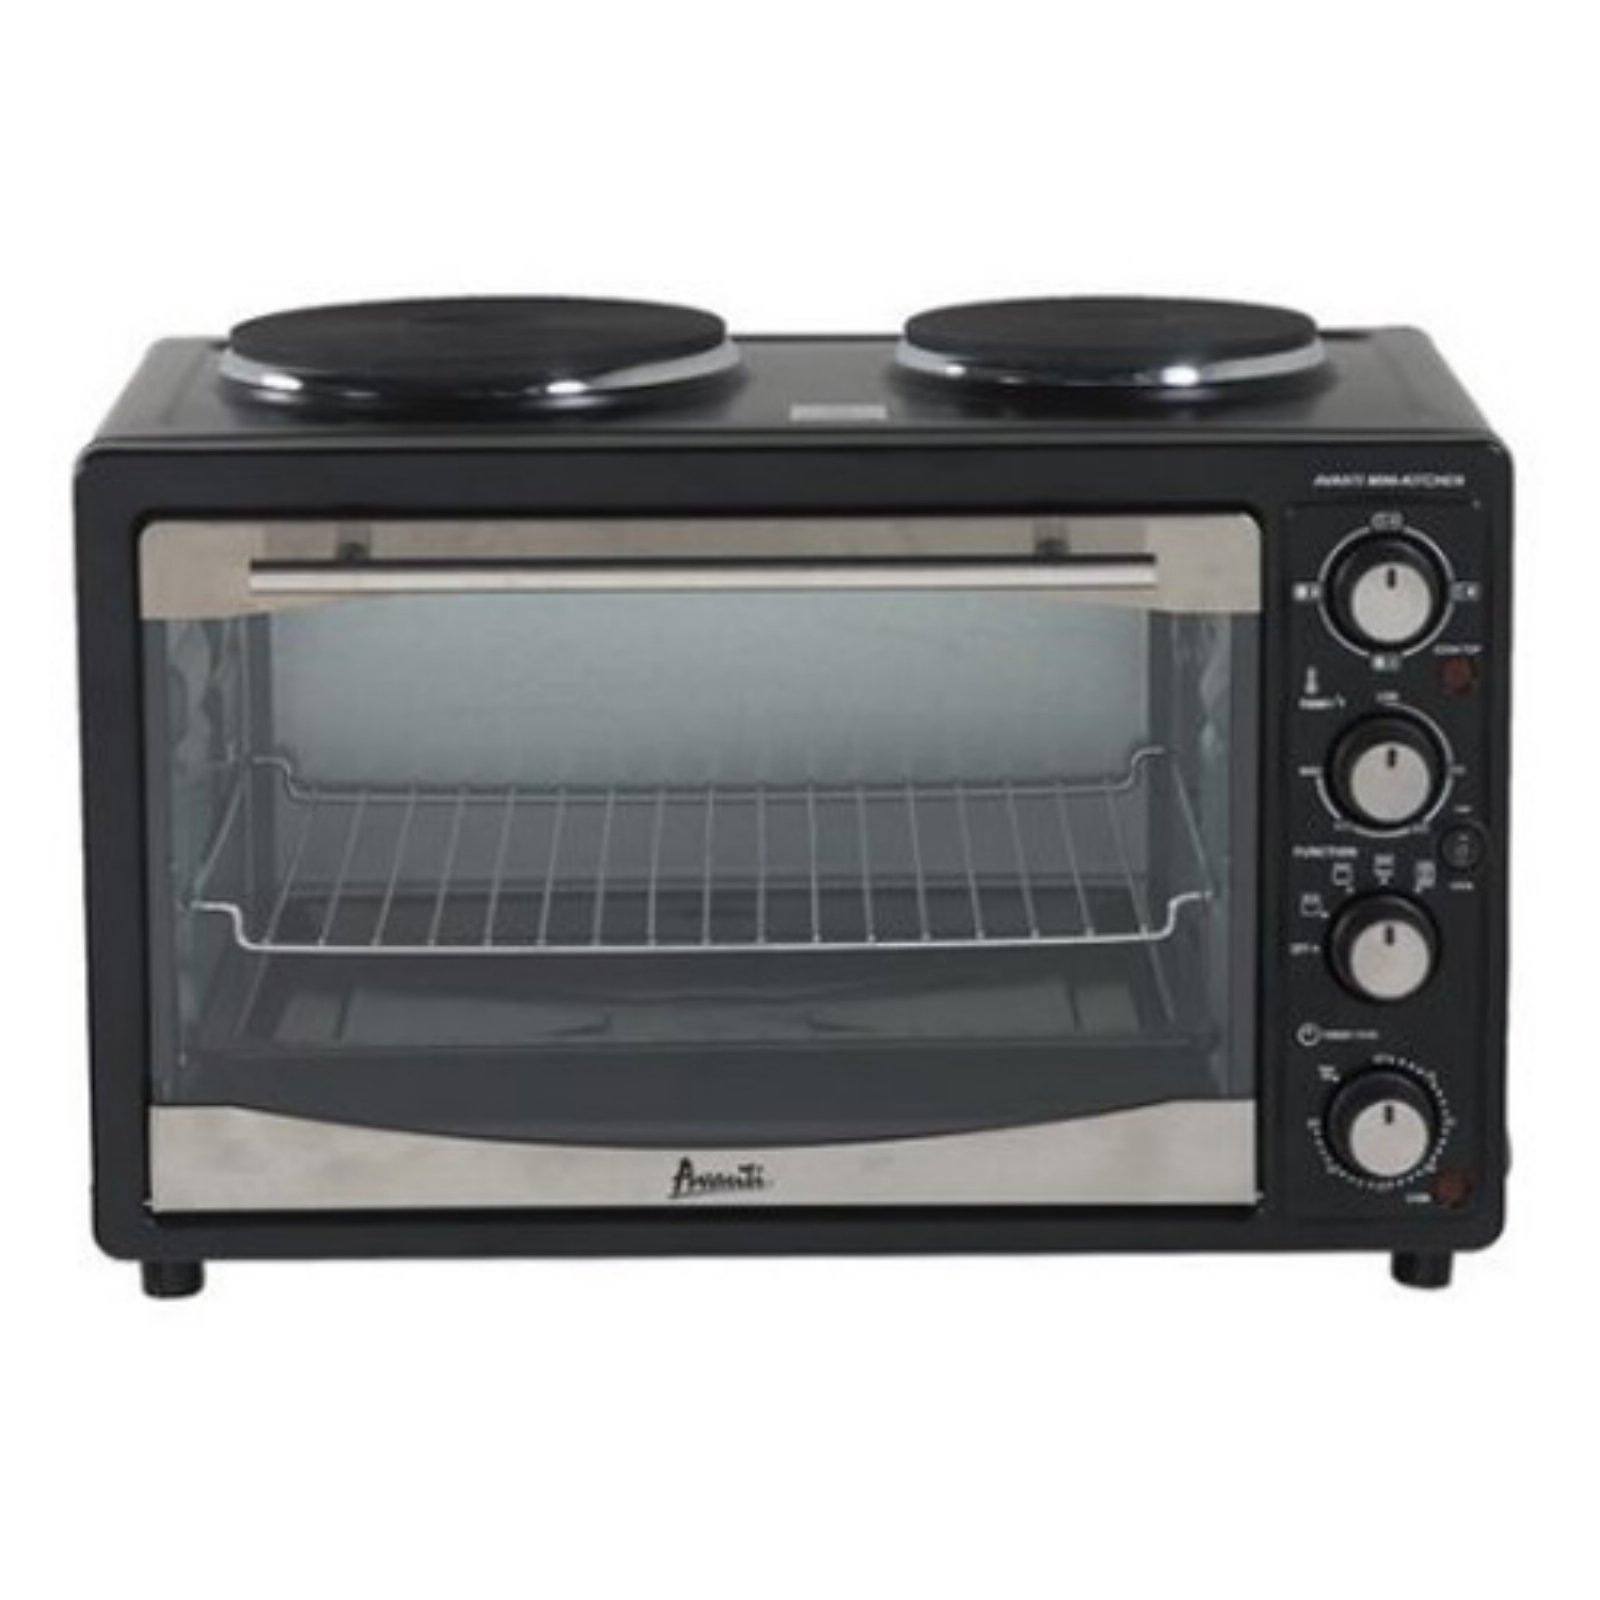 Avanti 1.1 cu. ft. Mini Kitchen Convection Oven by Avanti